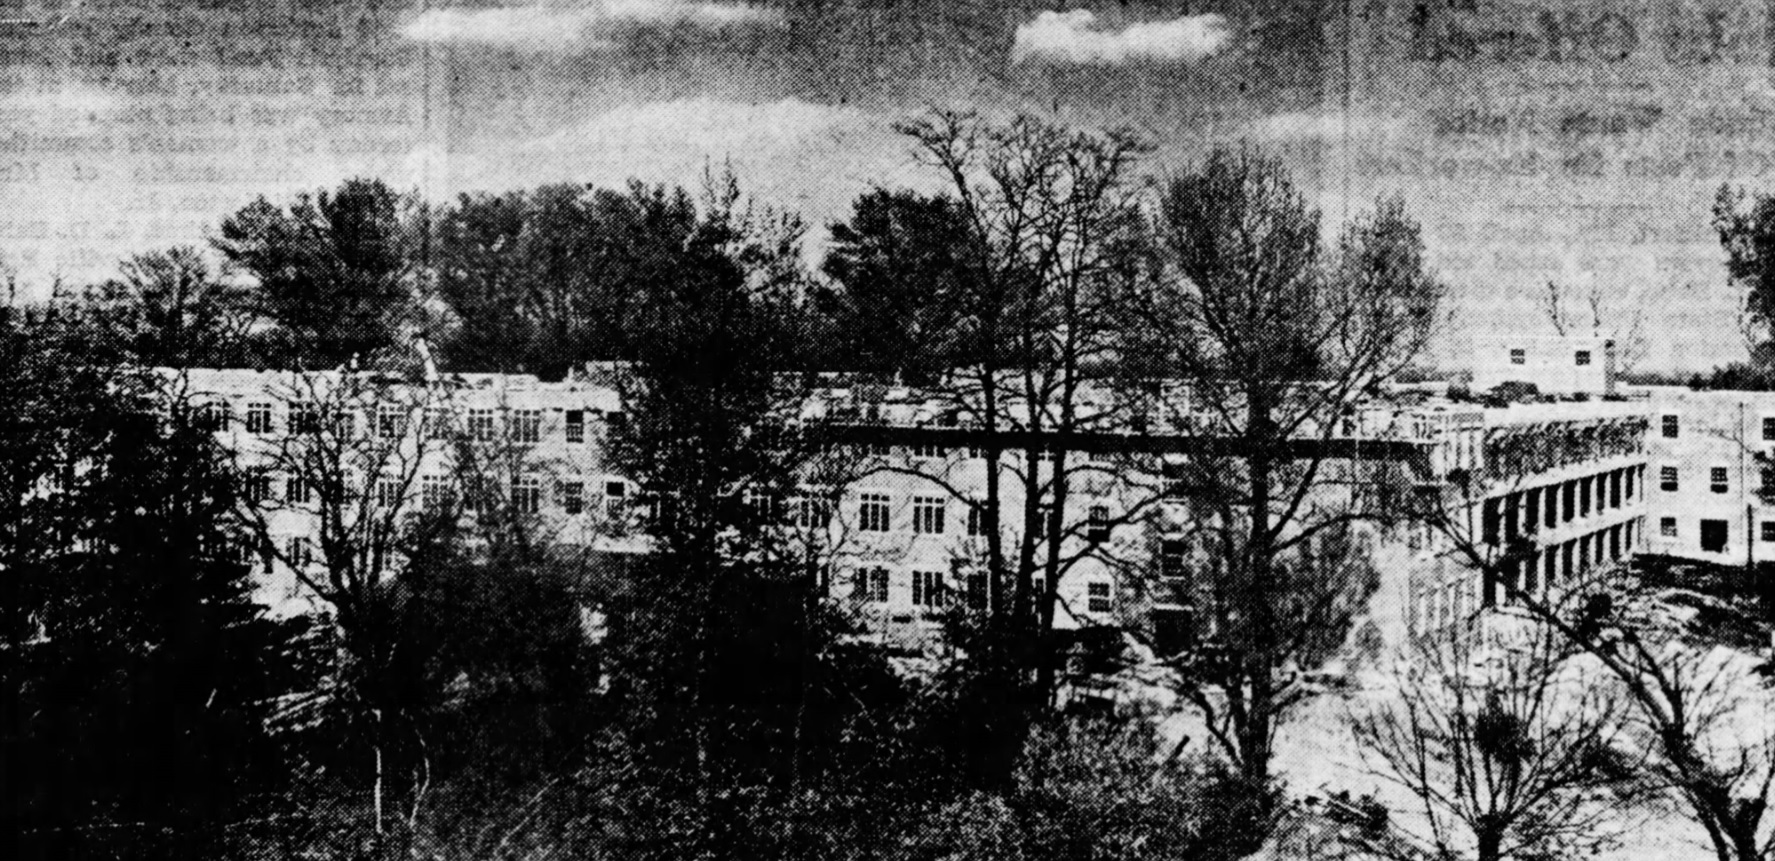 Hazelwood as a tuberculosis sanatorium.